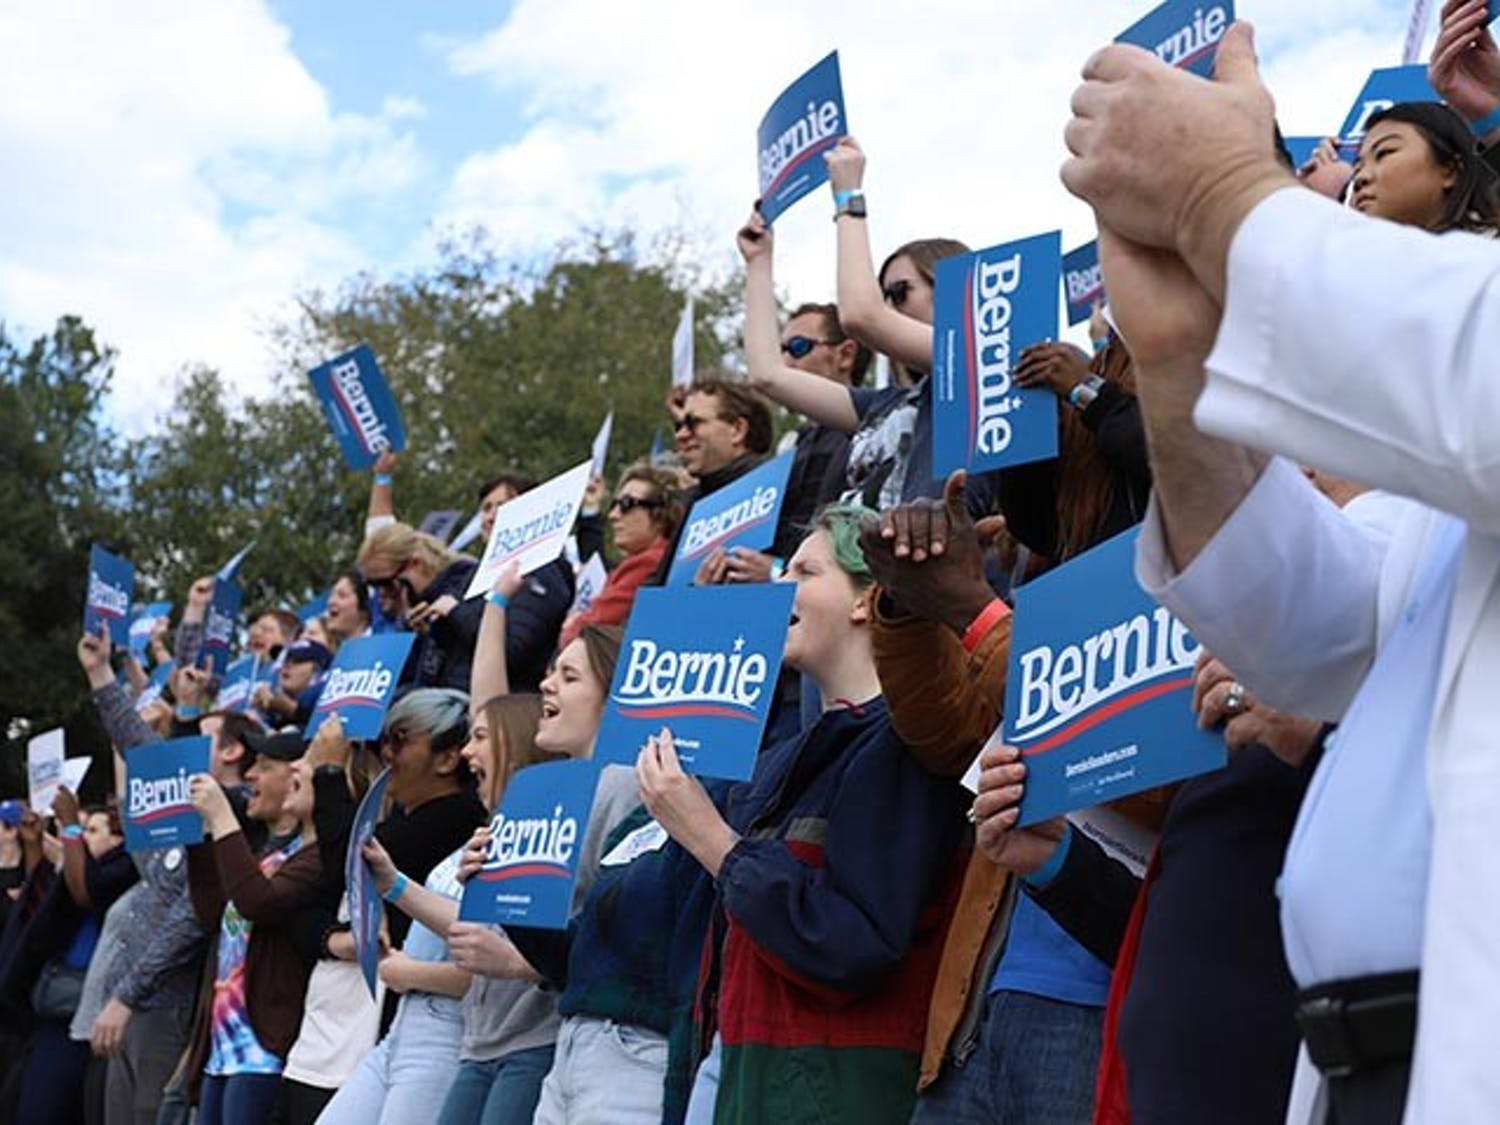 Bernie Sanders supporters were eager to see him at his rally at Finlay Park in Columbia, South Carolina, on Feb. 28. Many supporters expressed their support by dancing, shouting and applauding Sanders' speech.